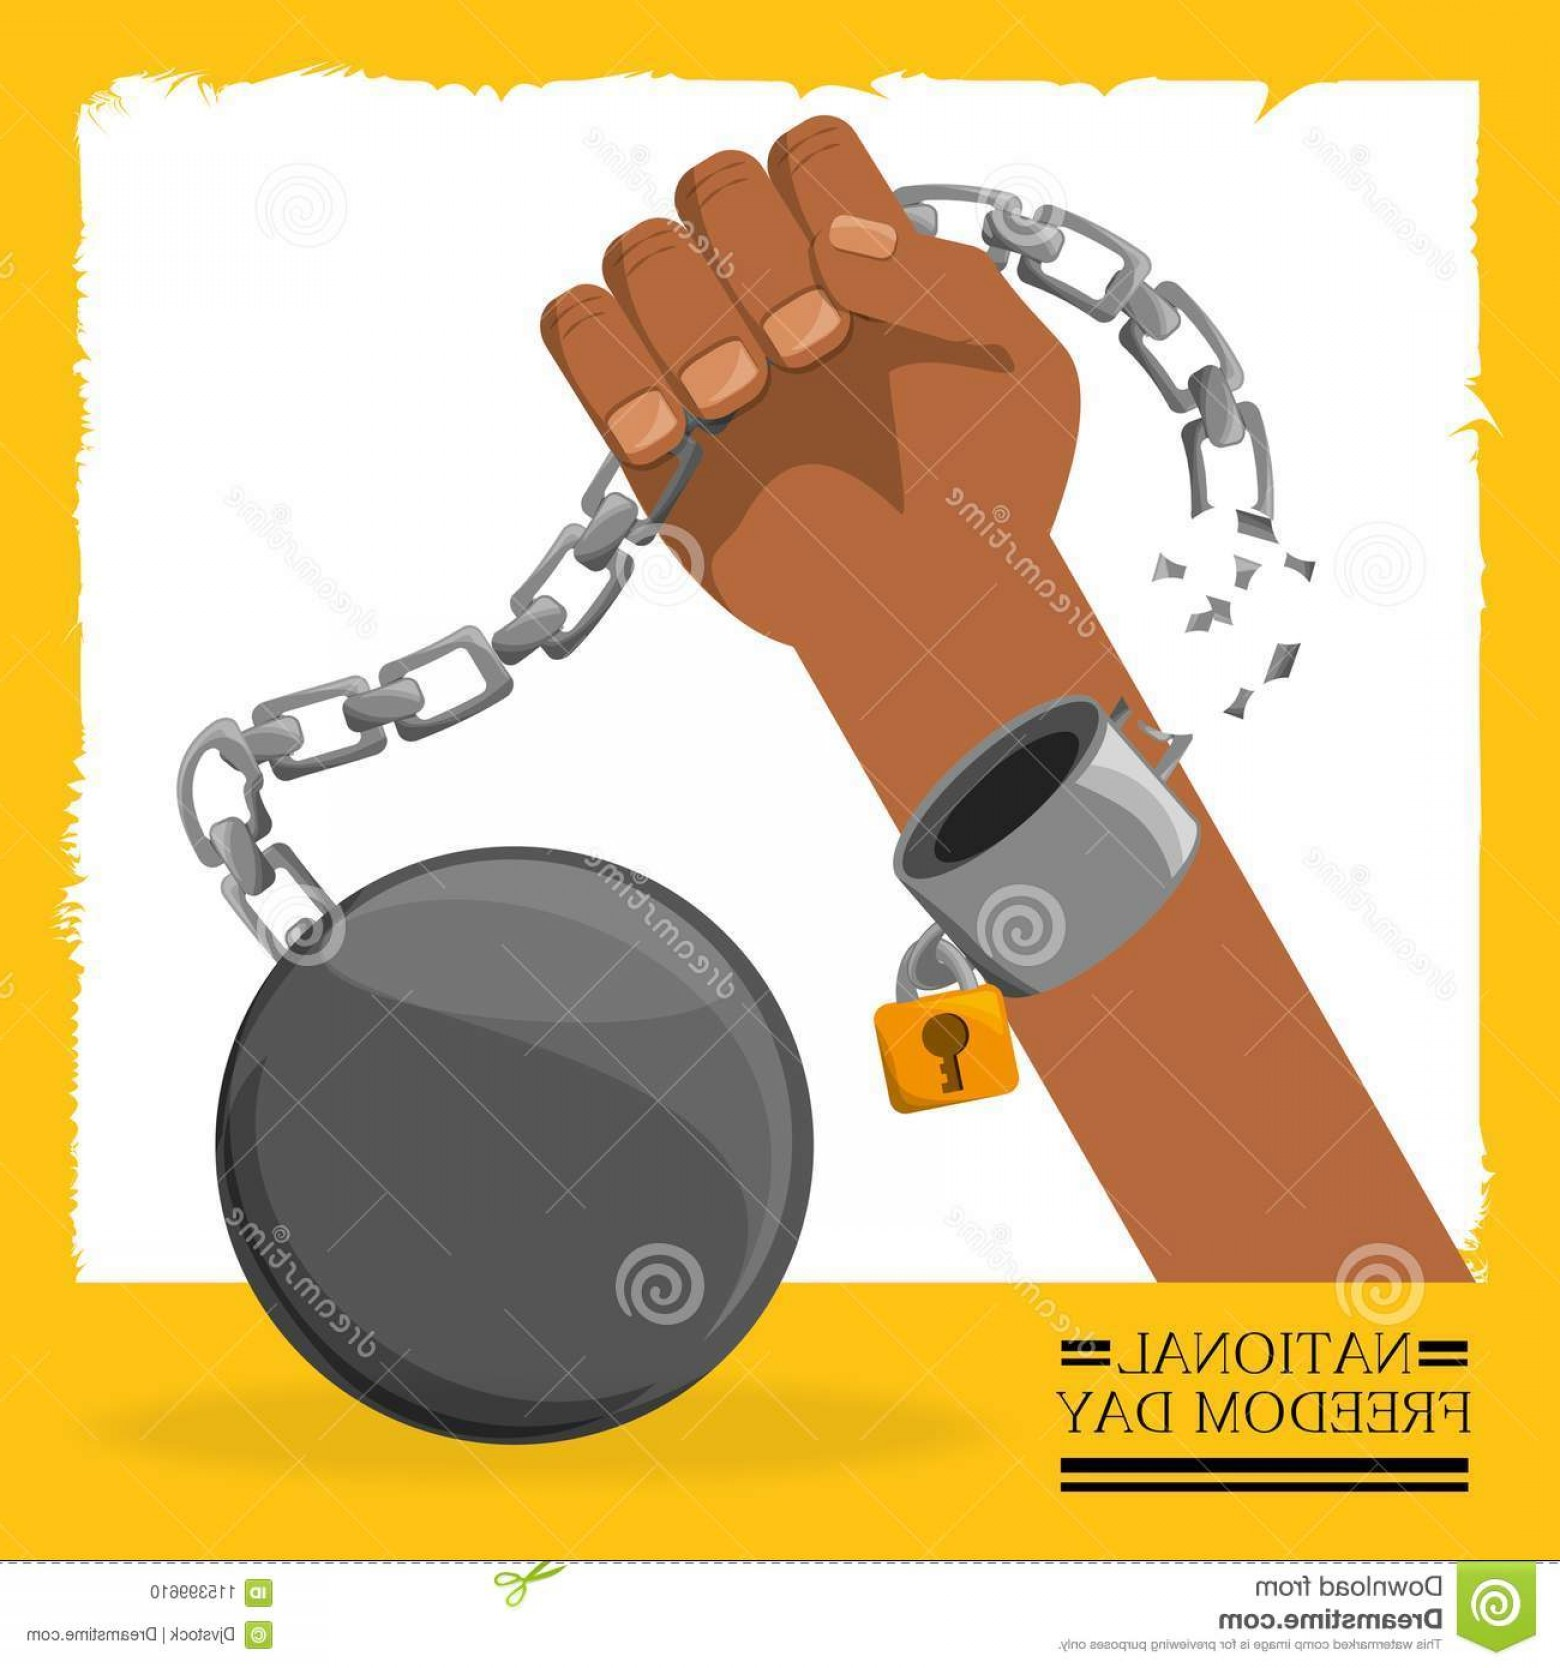 Chain And Lock Glove Vector: Chain Padlock Hand To Celebrate Freedom Chain Padlock Hand To Celebrate Freedom Vector Illustration Image